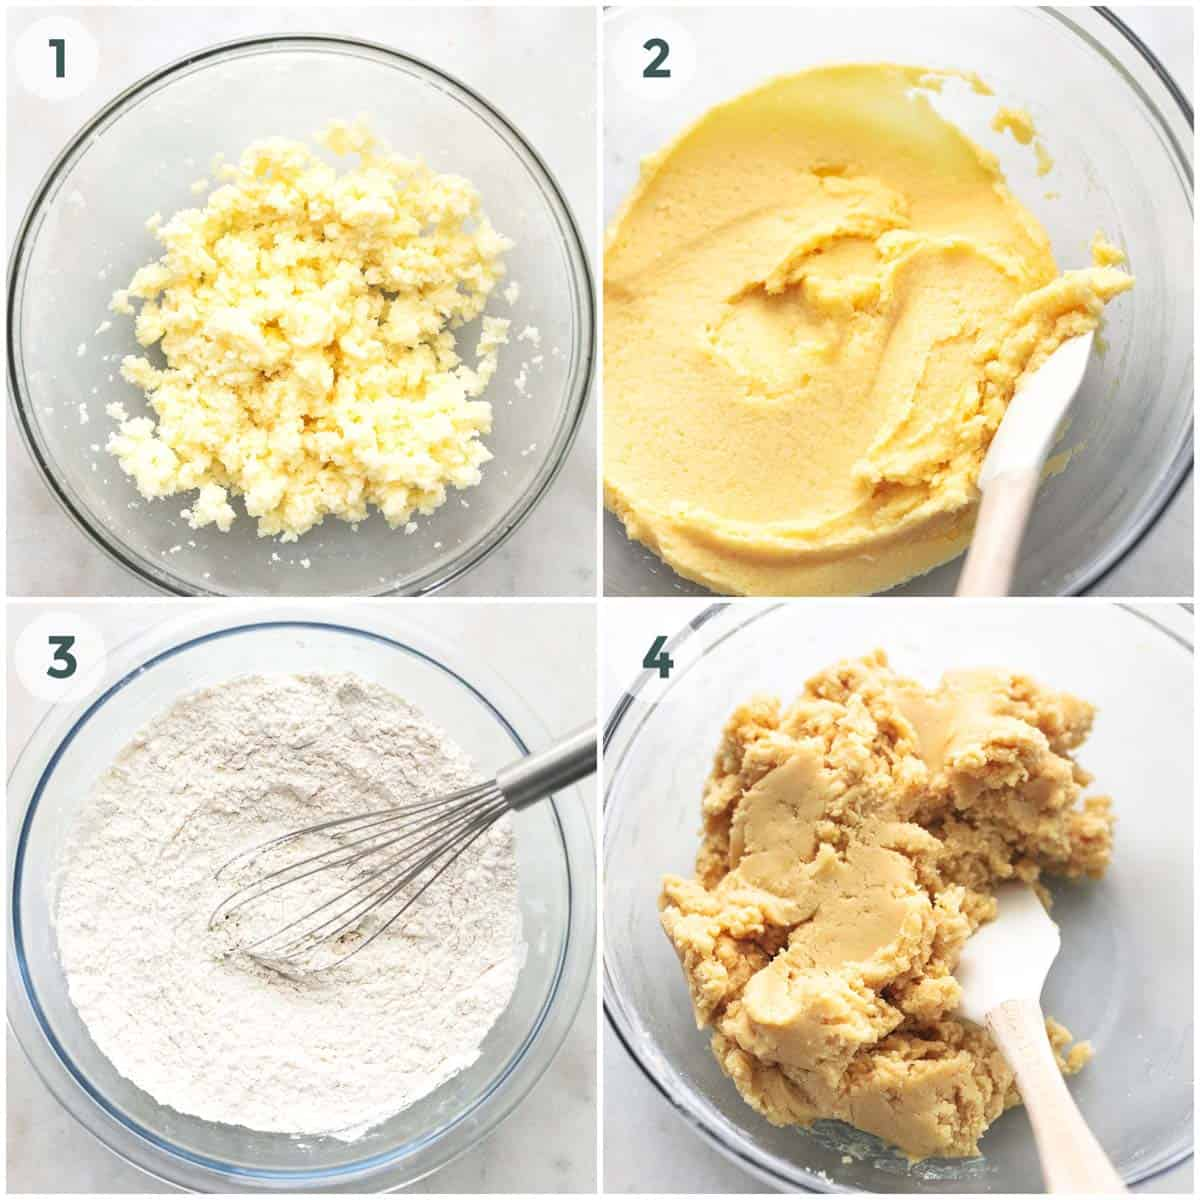 collage showing preparation and mixing of dough for sugar cookie bars.